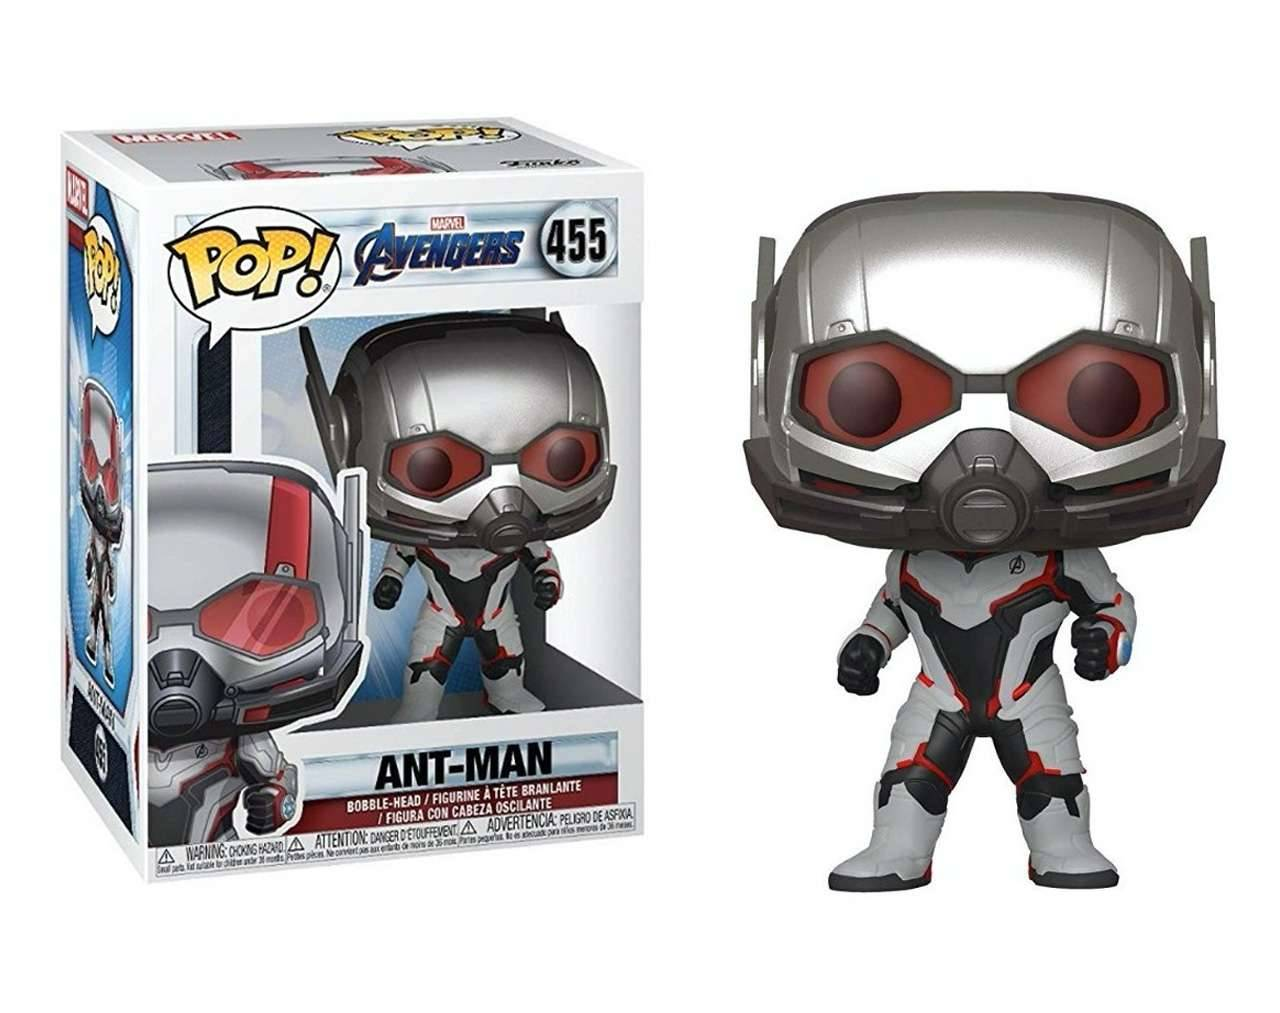 Ant-Man (Endgame) Pop! Vinyl